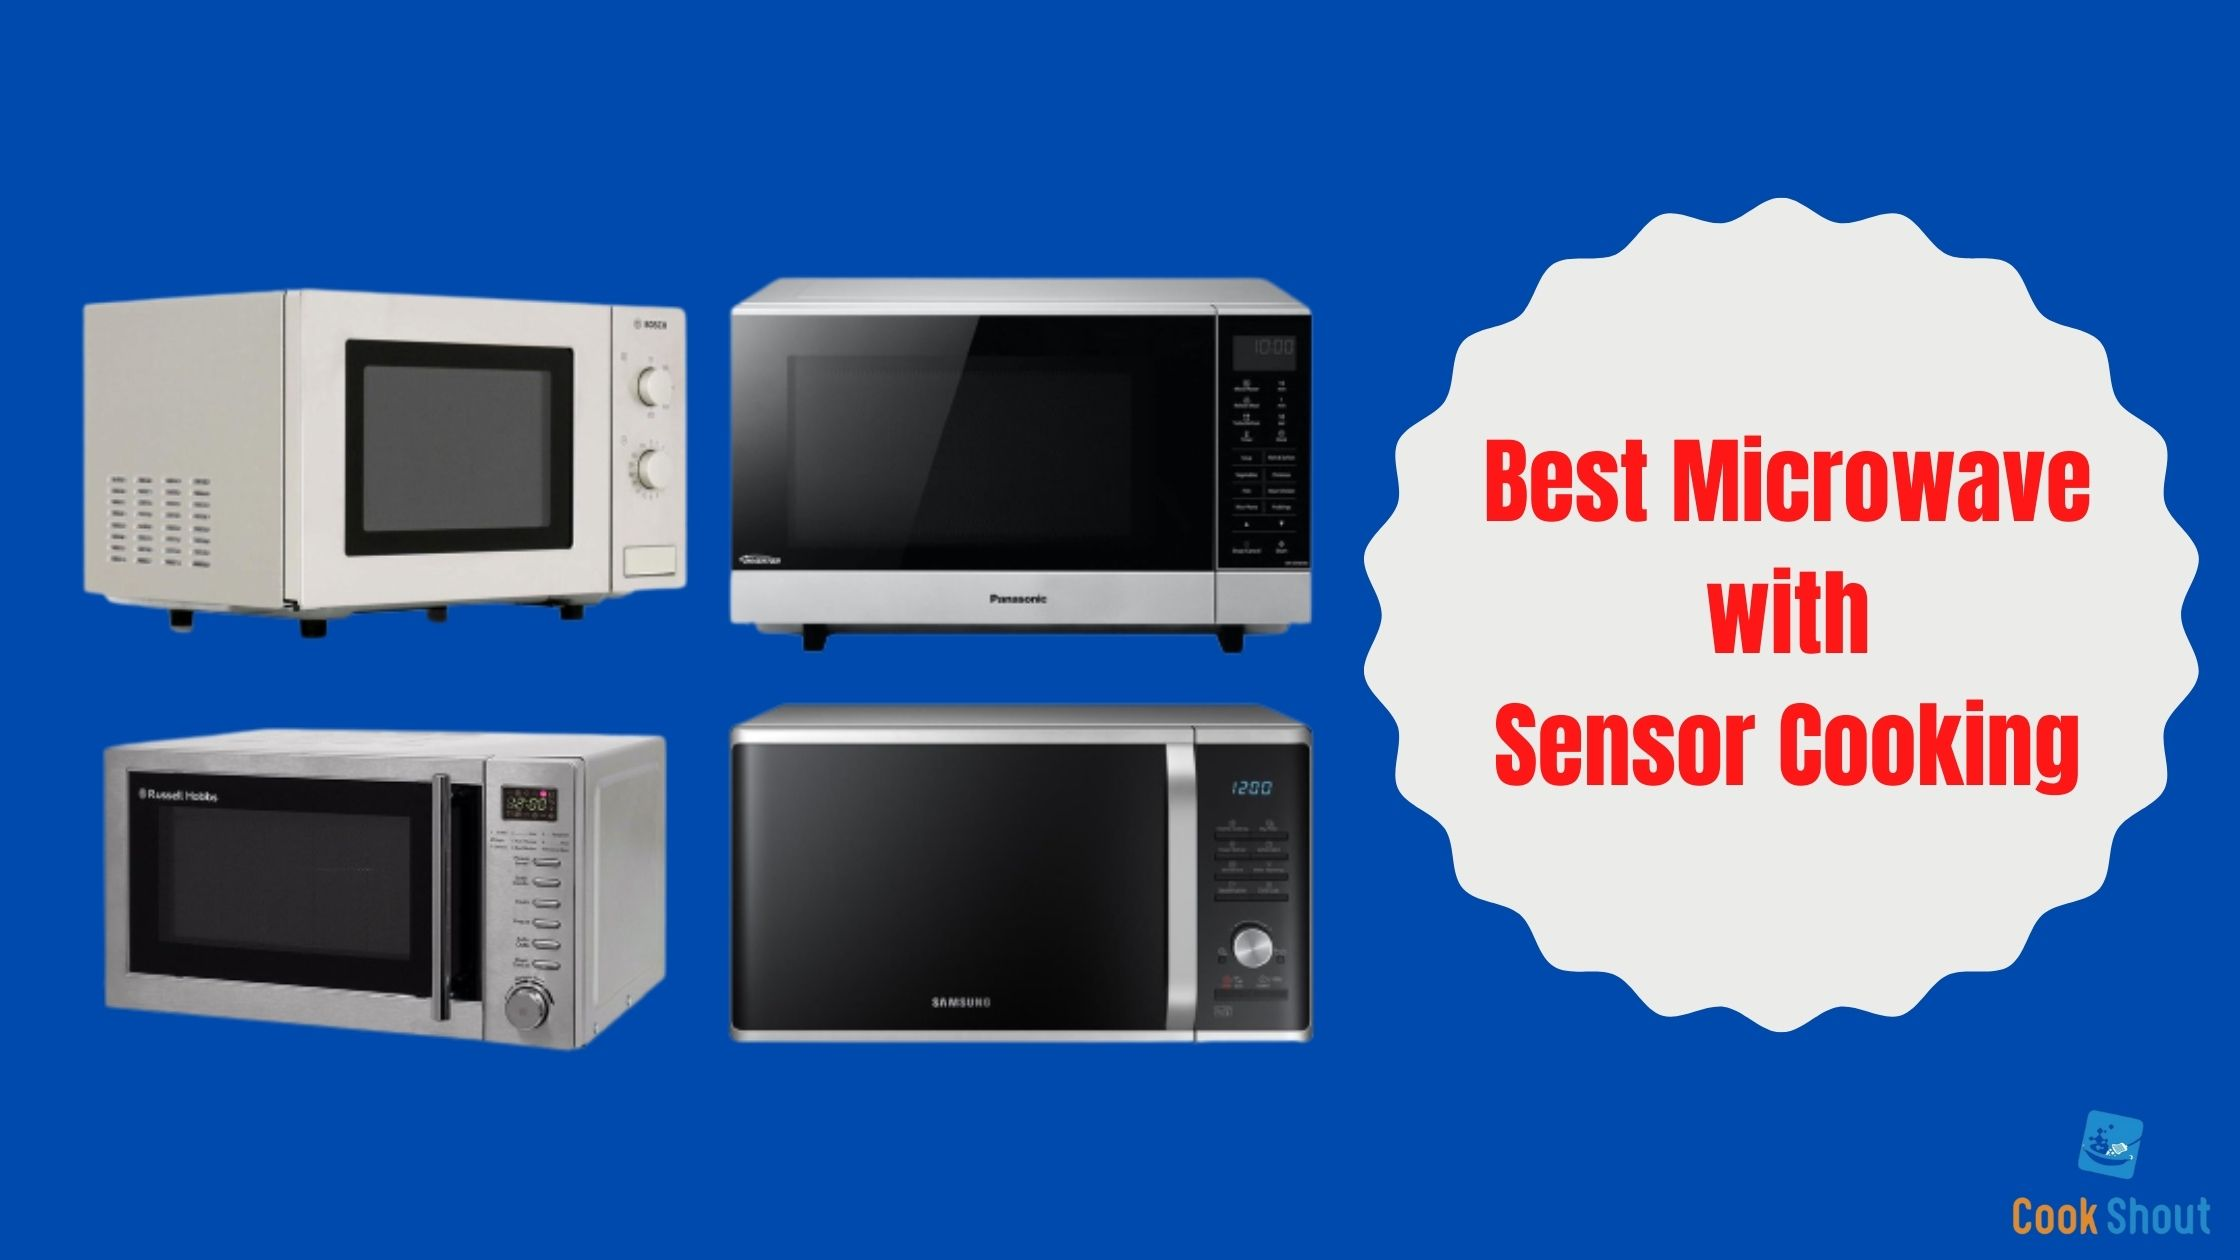 Best Microwave with Sensor Cooking